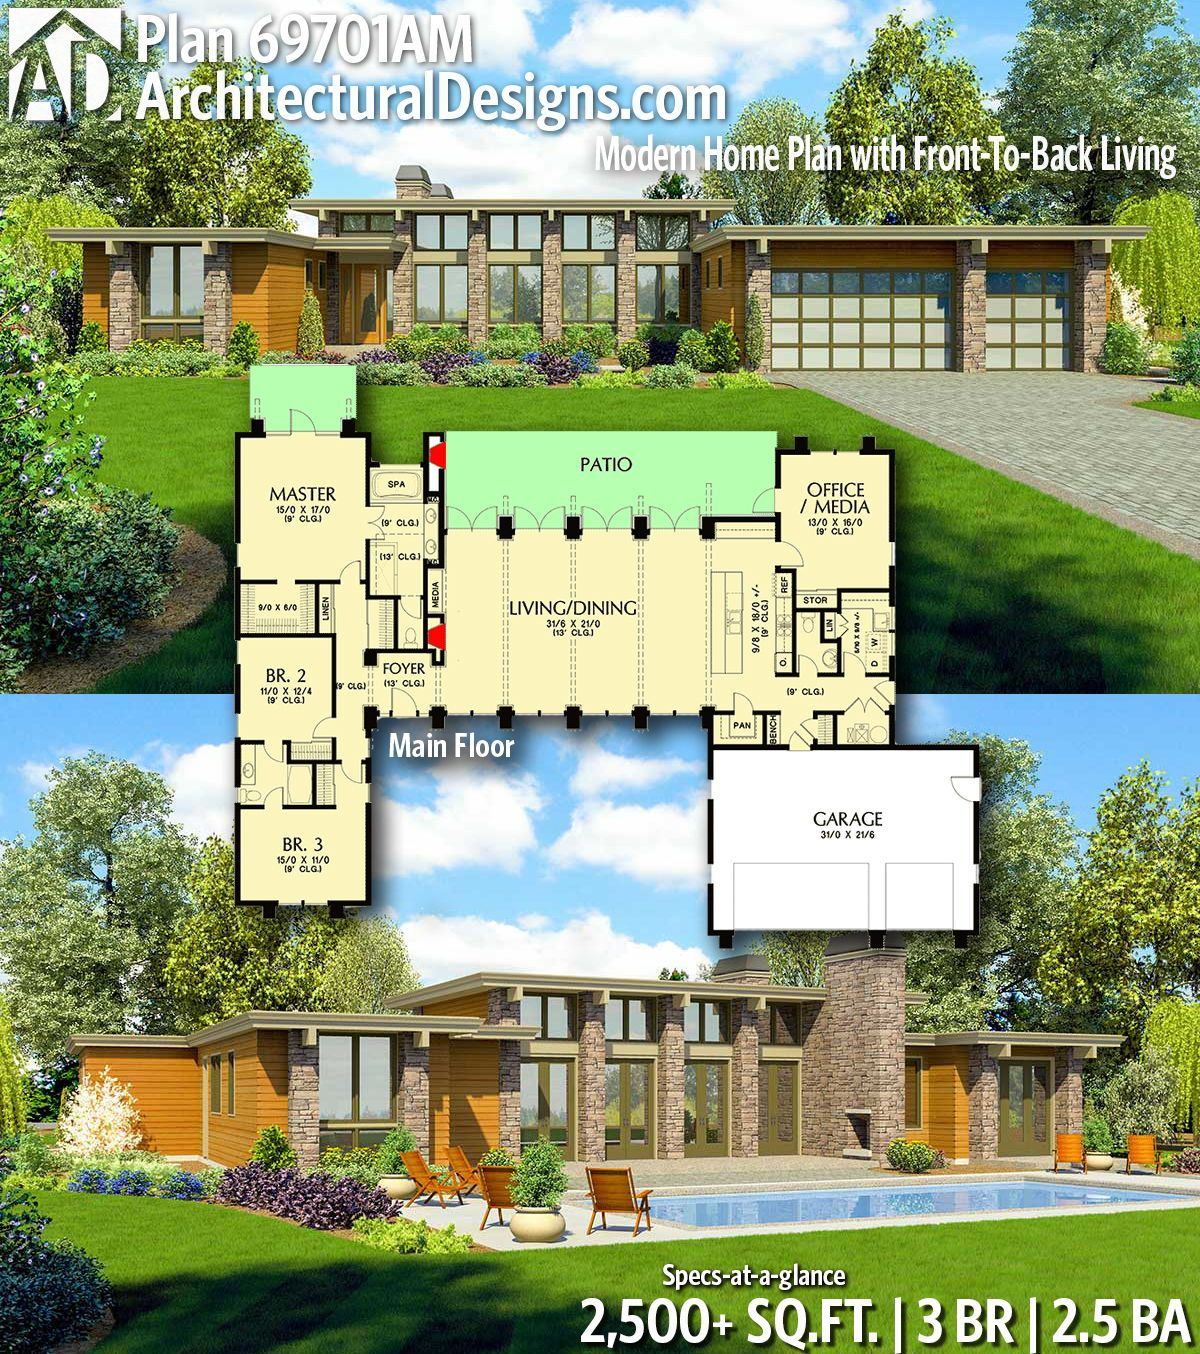 Plan 69701am Modern Home Plan With Front To Back Living In 2020 House Plans Modern House Plans Mid Century Modern House Plans